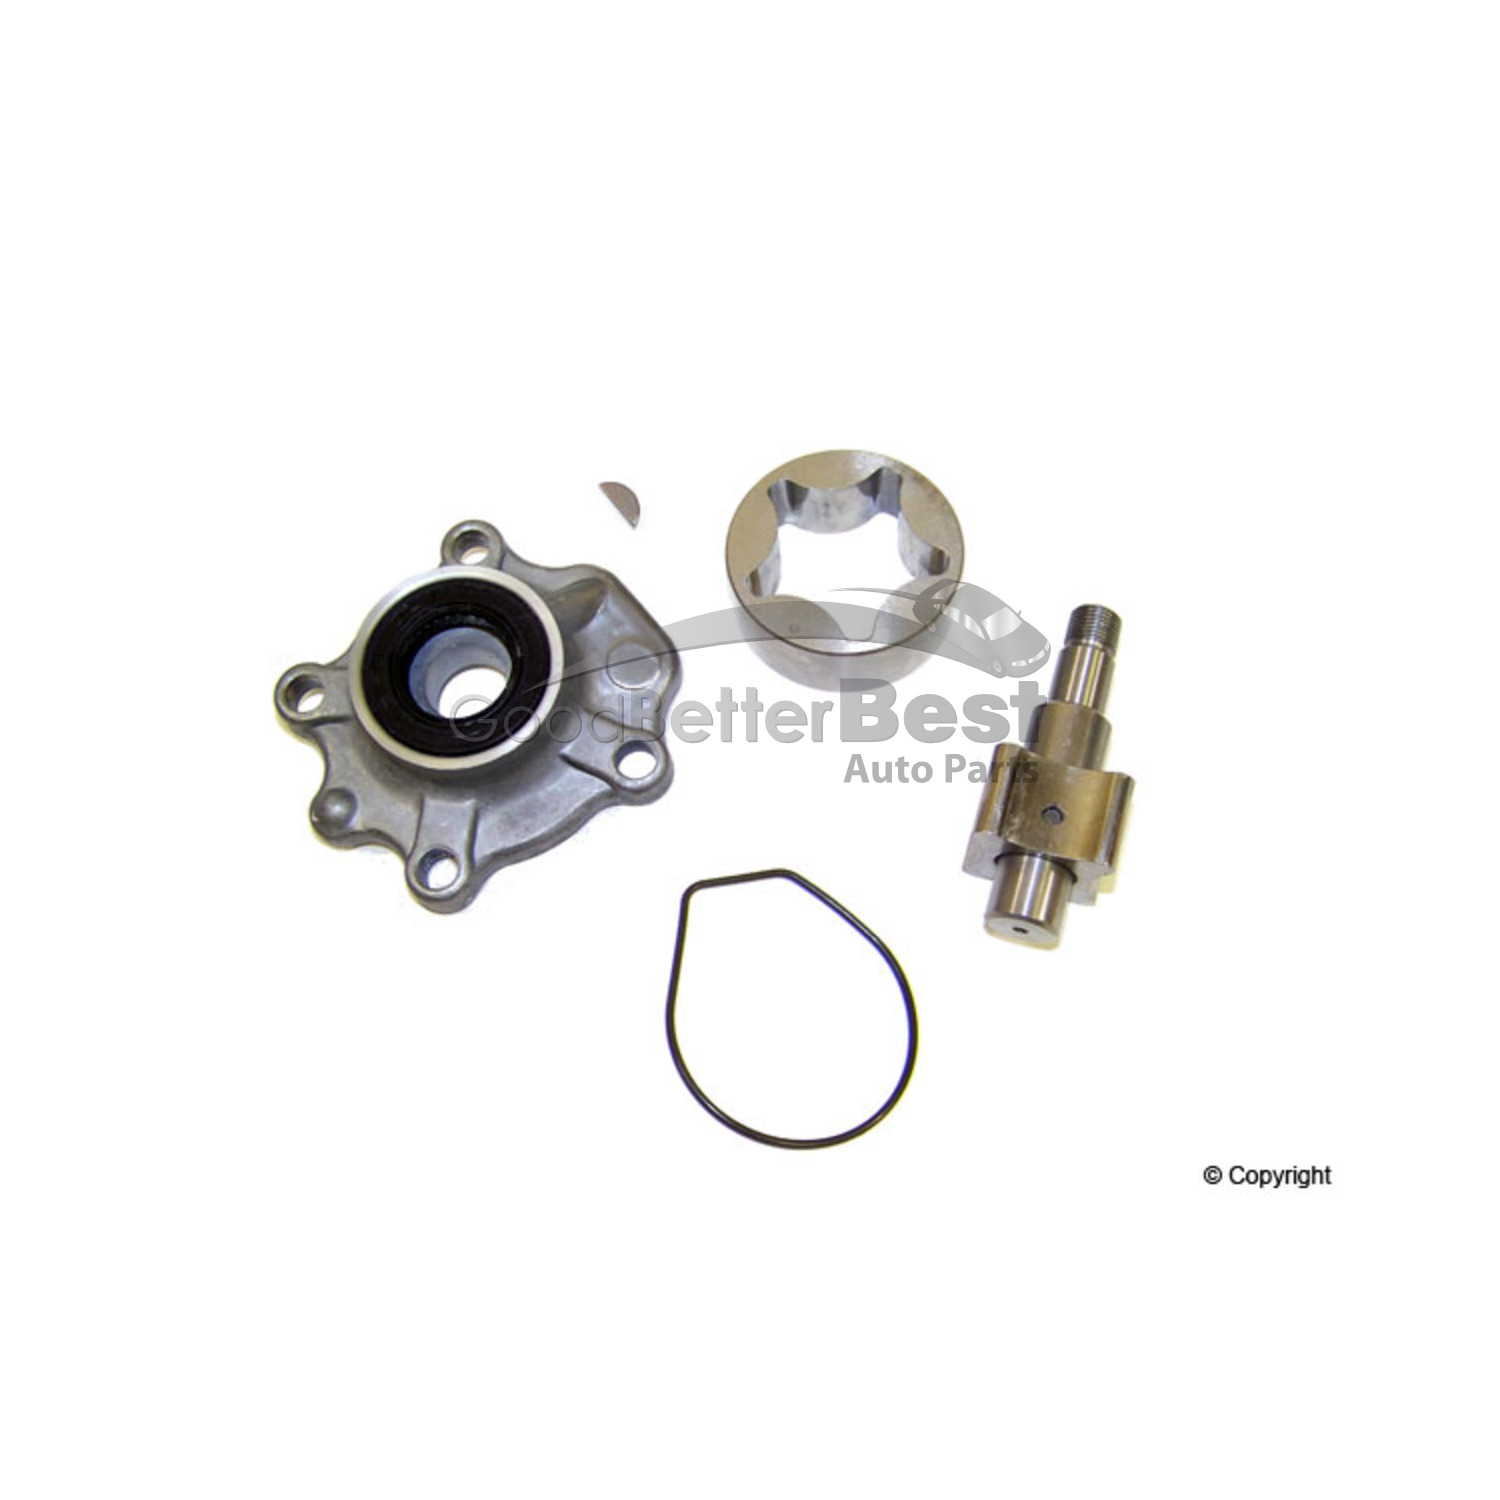 One New Rock Engine Oil Pump OP305 8944597301 for Honda